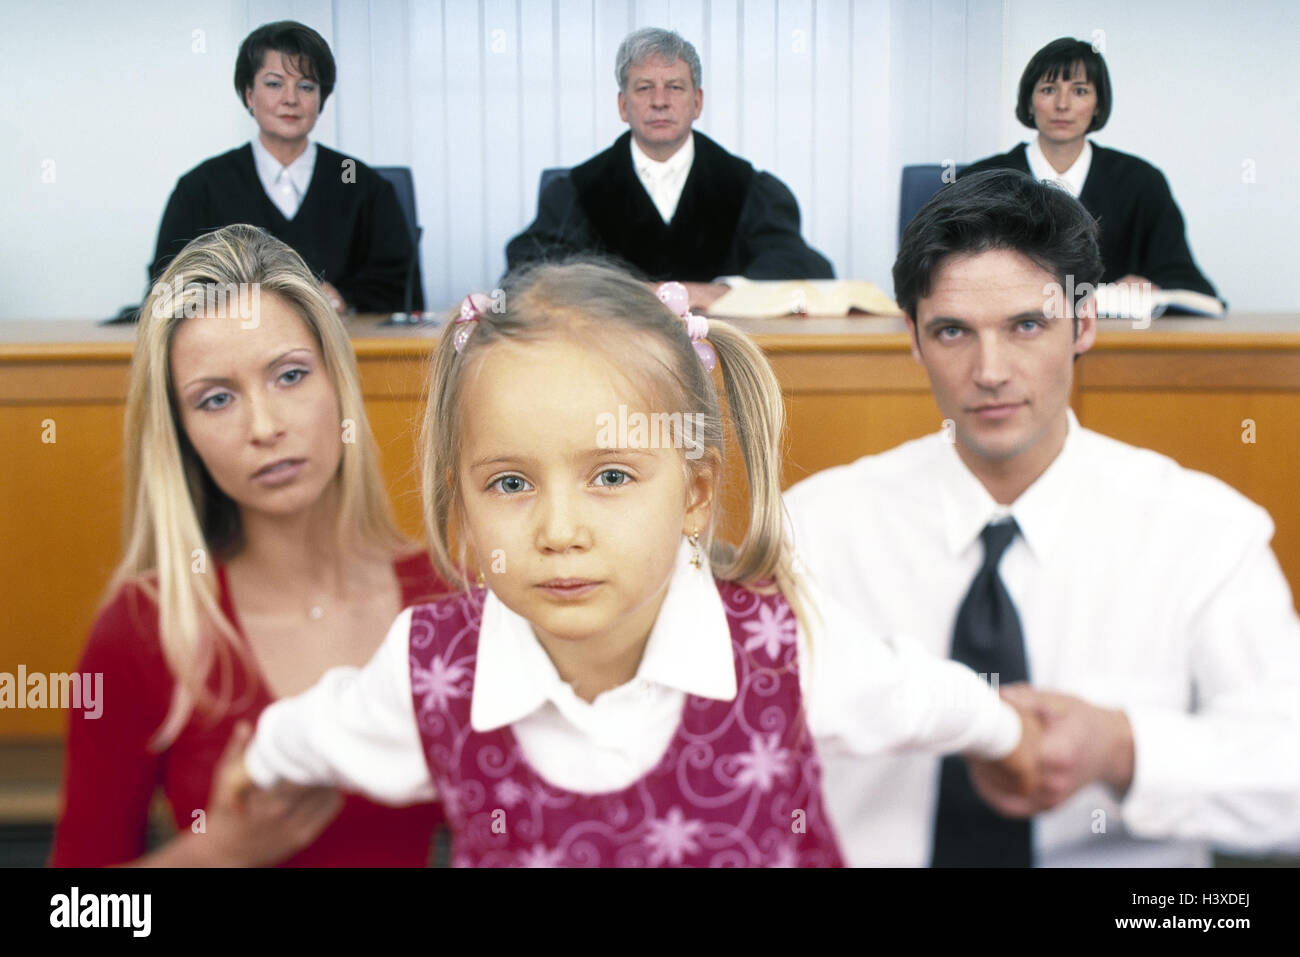 Separation, custody, courtroom, judge, sollicitors, couple, fight, custody, subsidiary hearing, negotiations, dish, - Stock Image